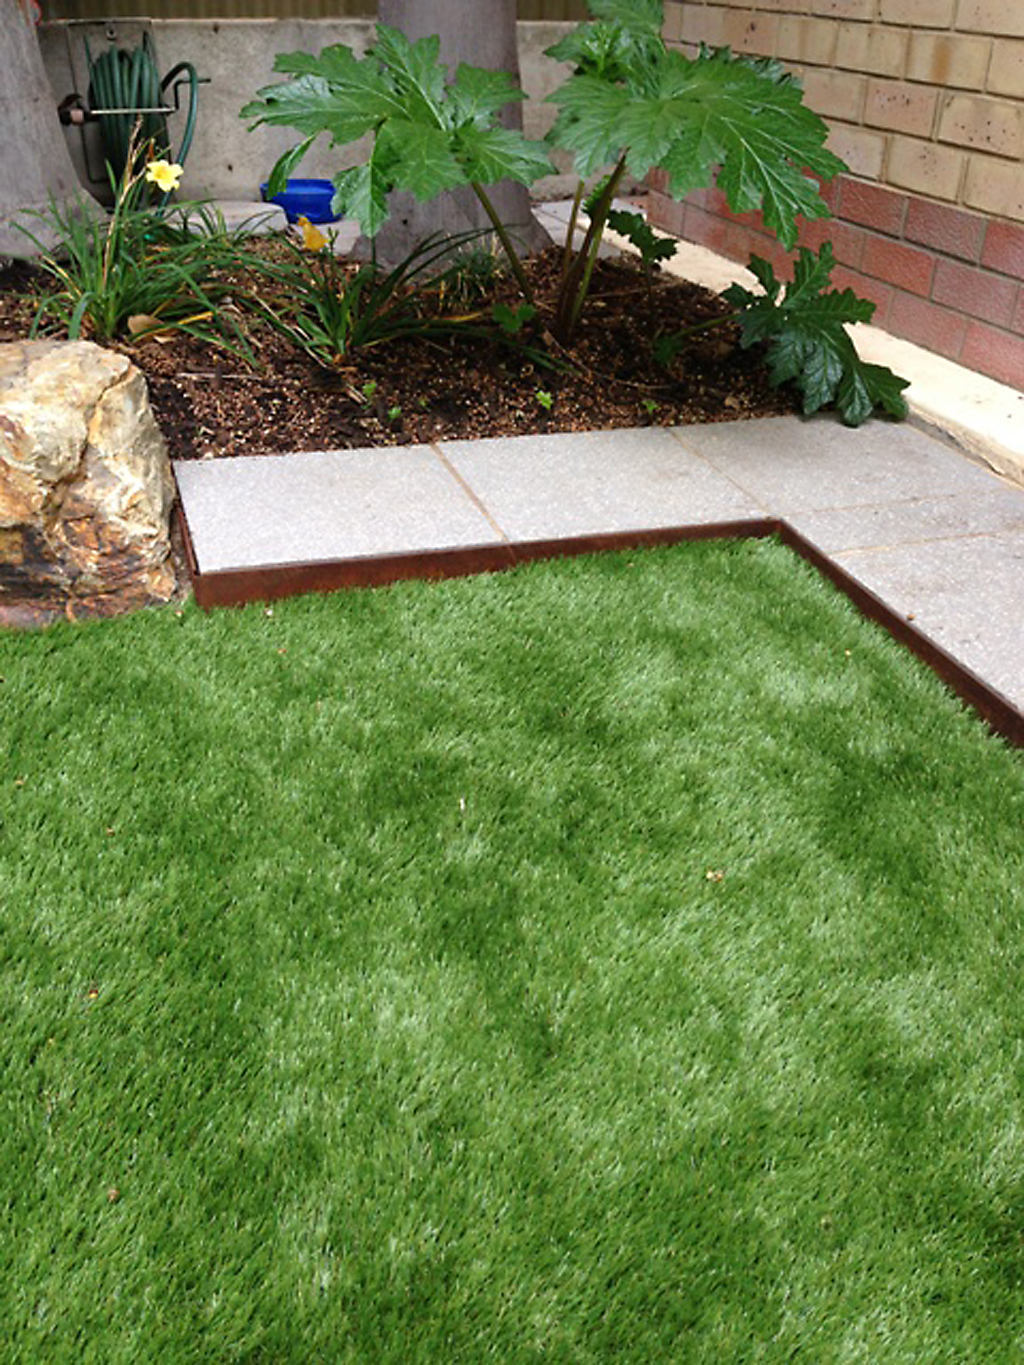 Diy metal lawn edging home decor for Cheap diy garden edging